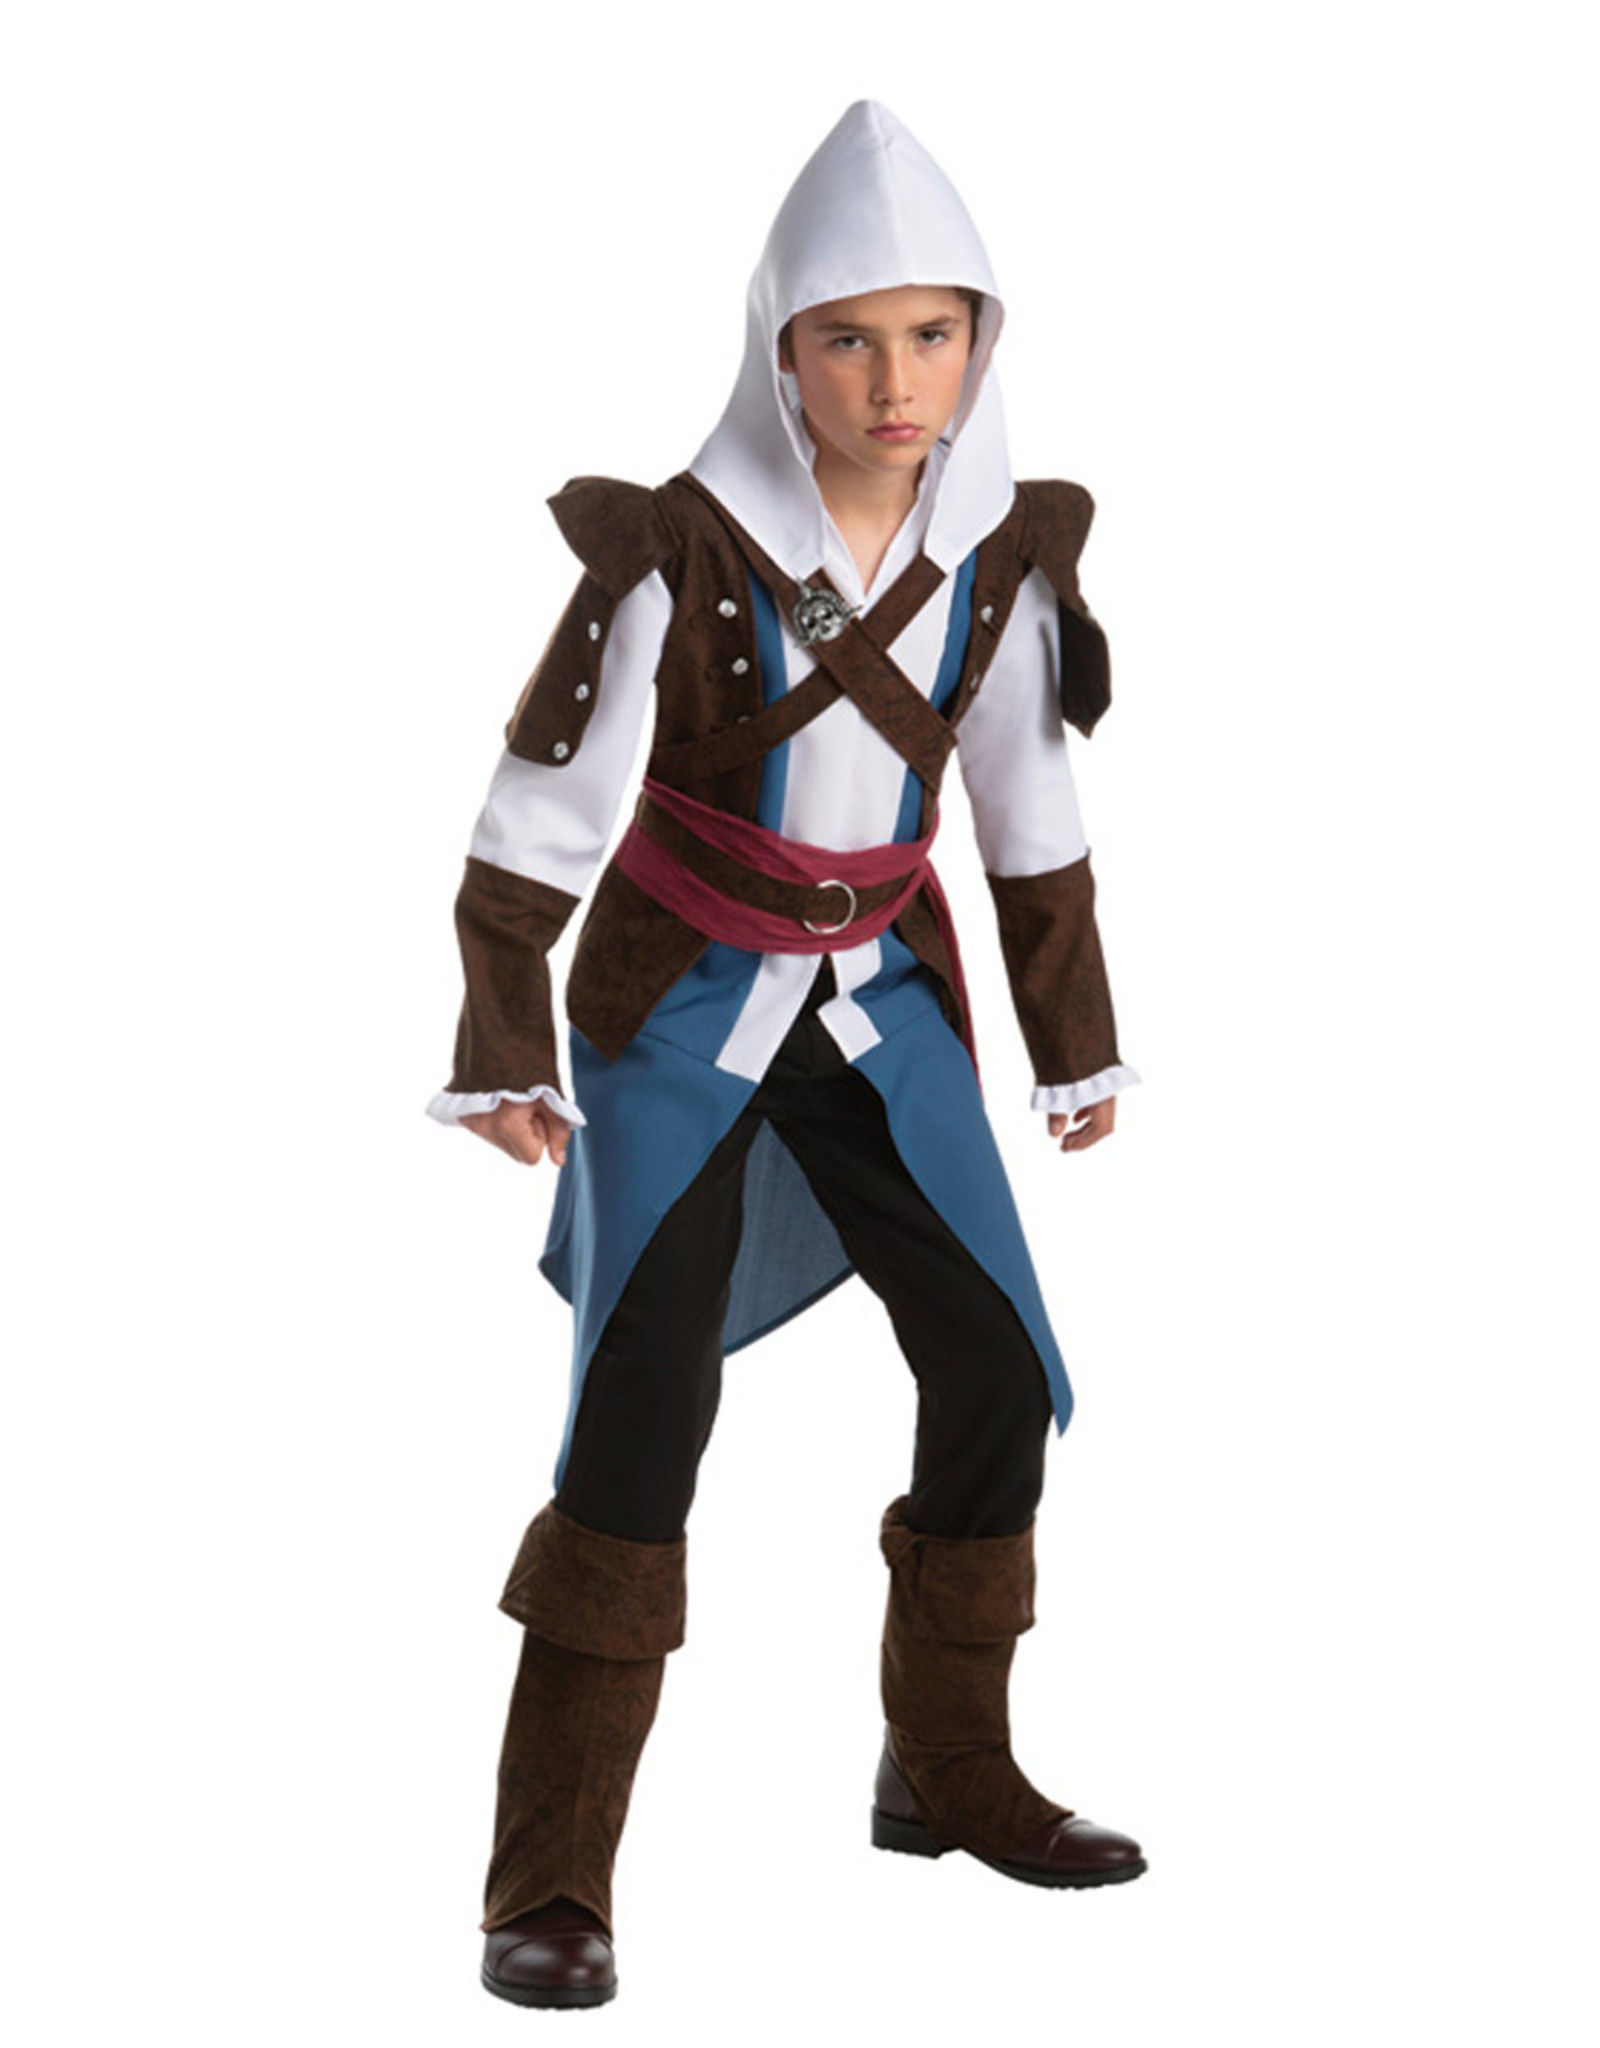 Edward - Assassin's Creed Costume - Boys